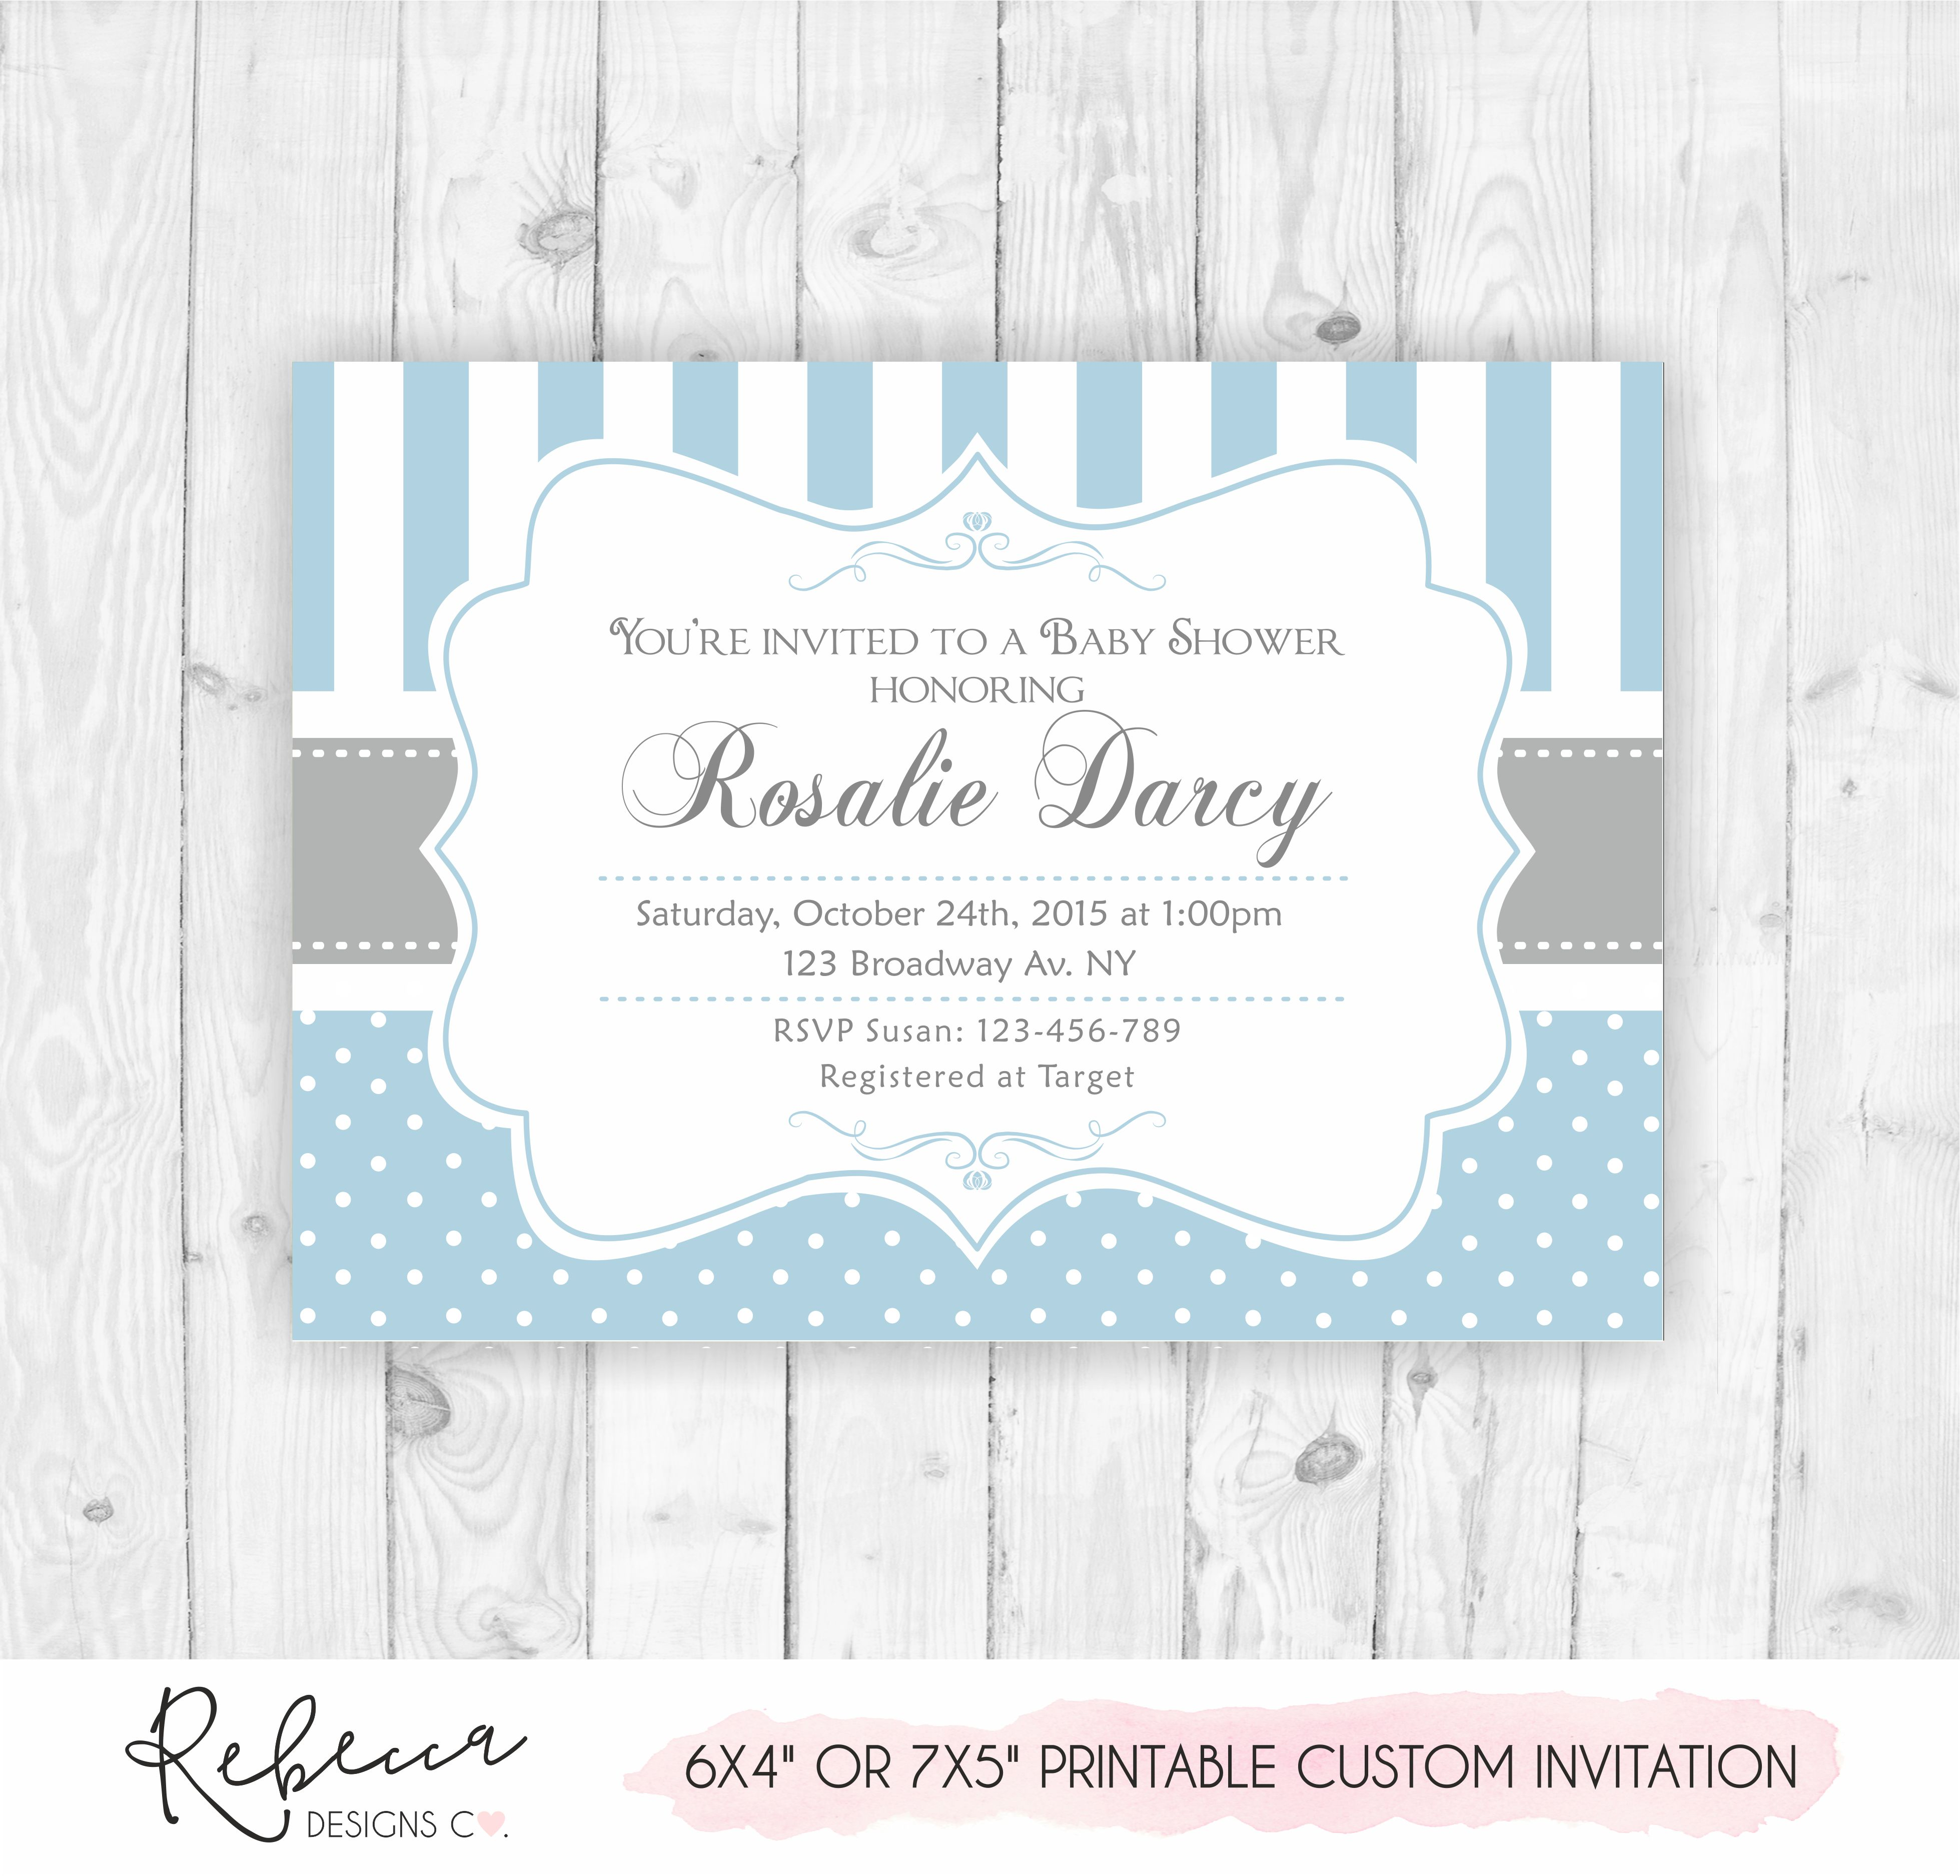 photograph regarding Baby Shower Invitation Printable identified as Boy child shower invitation Printable tailor made layout